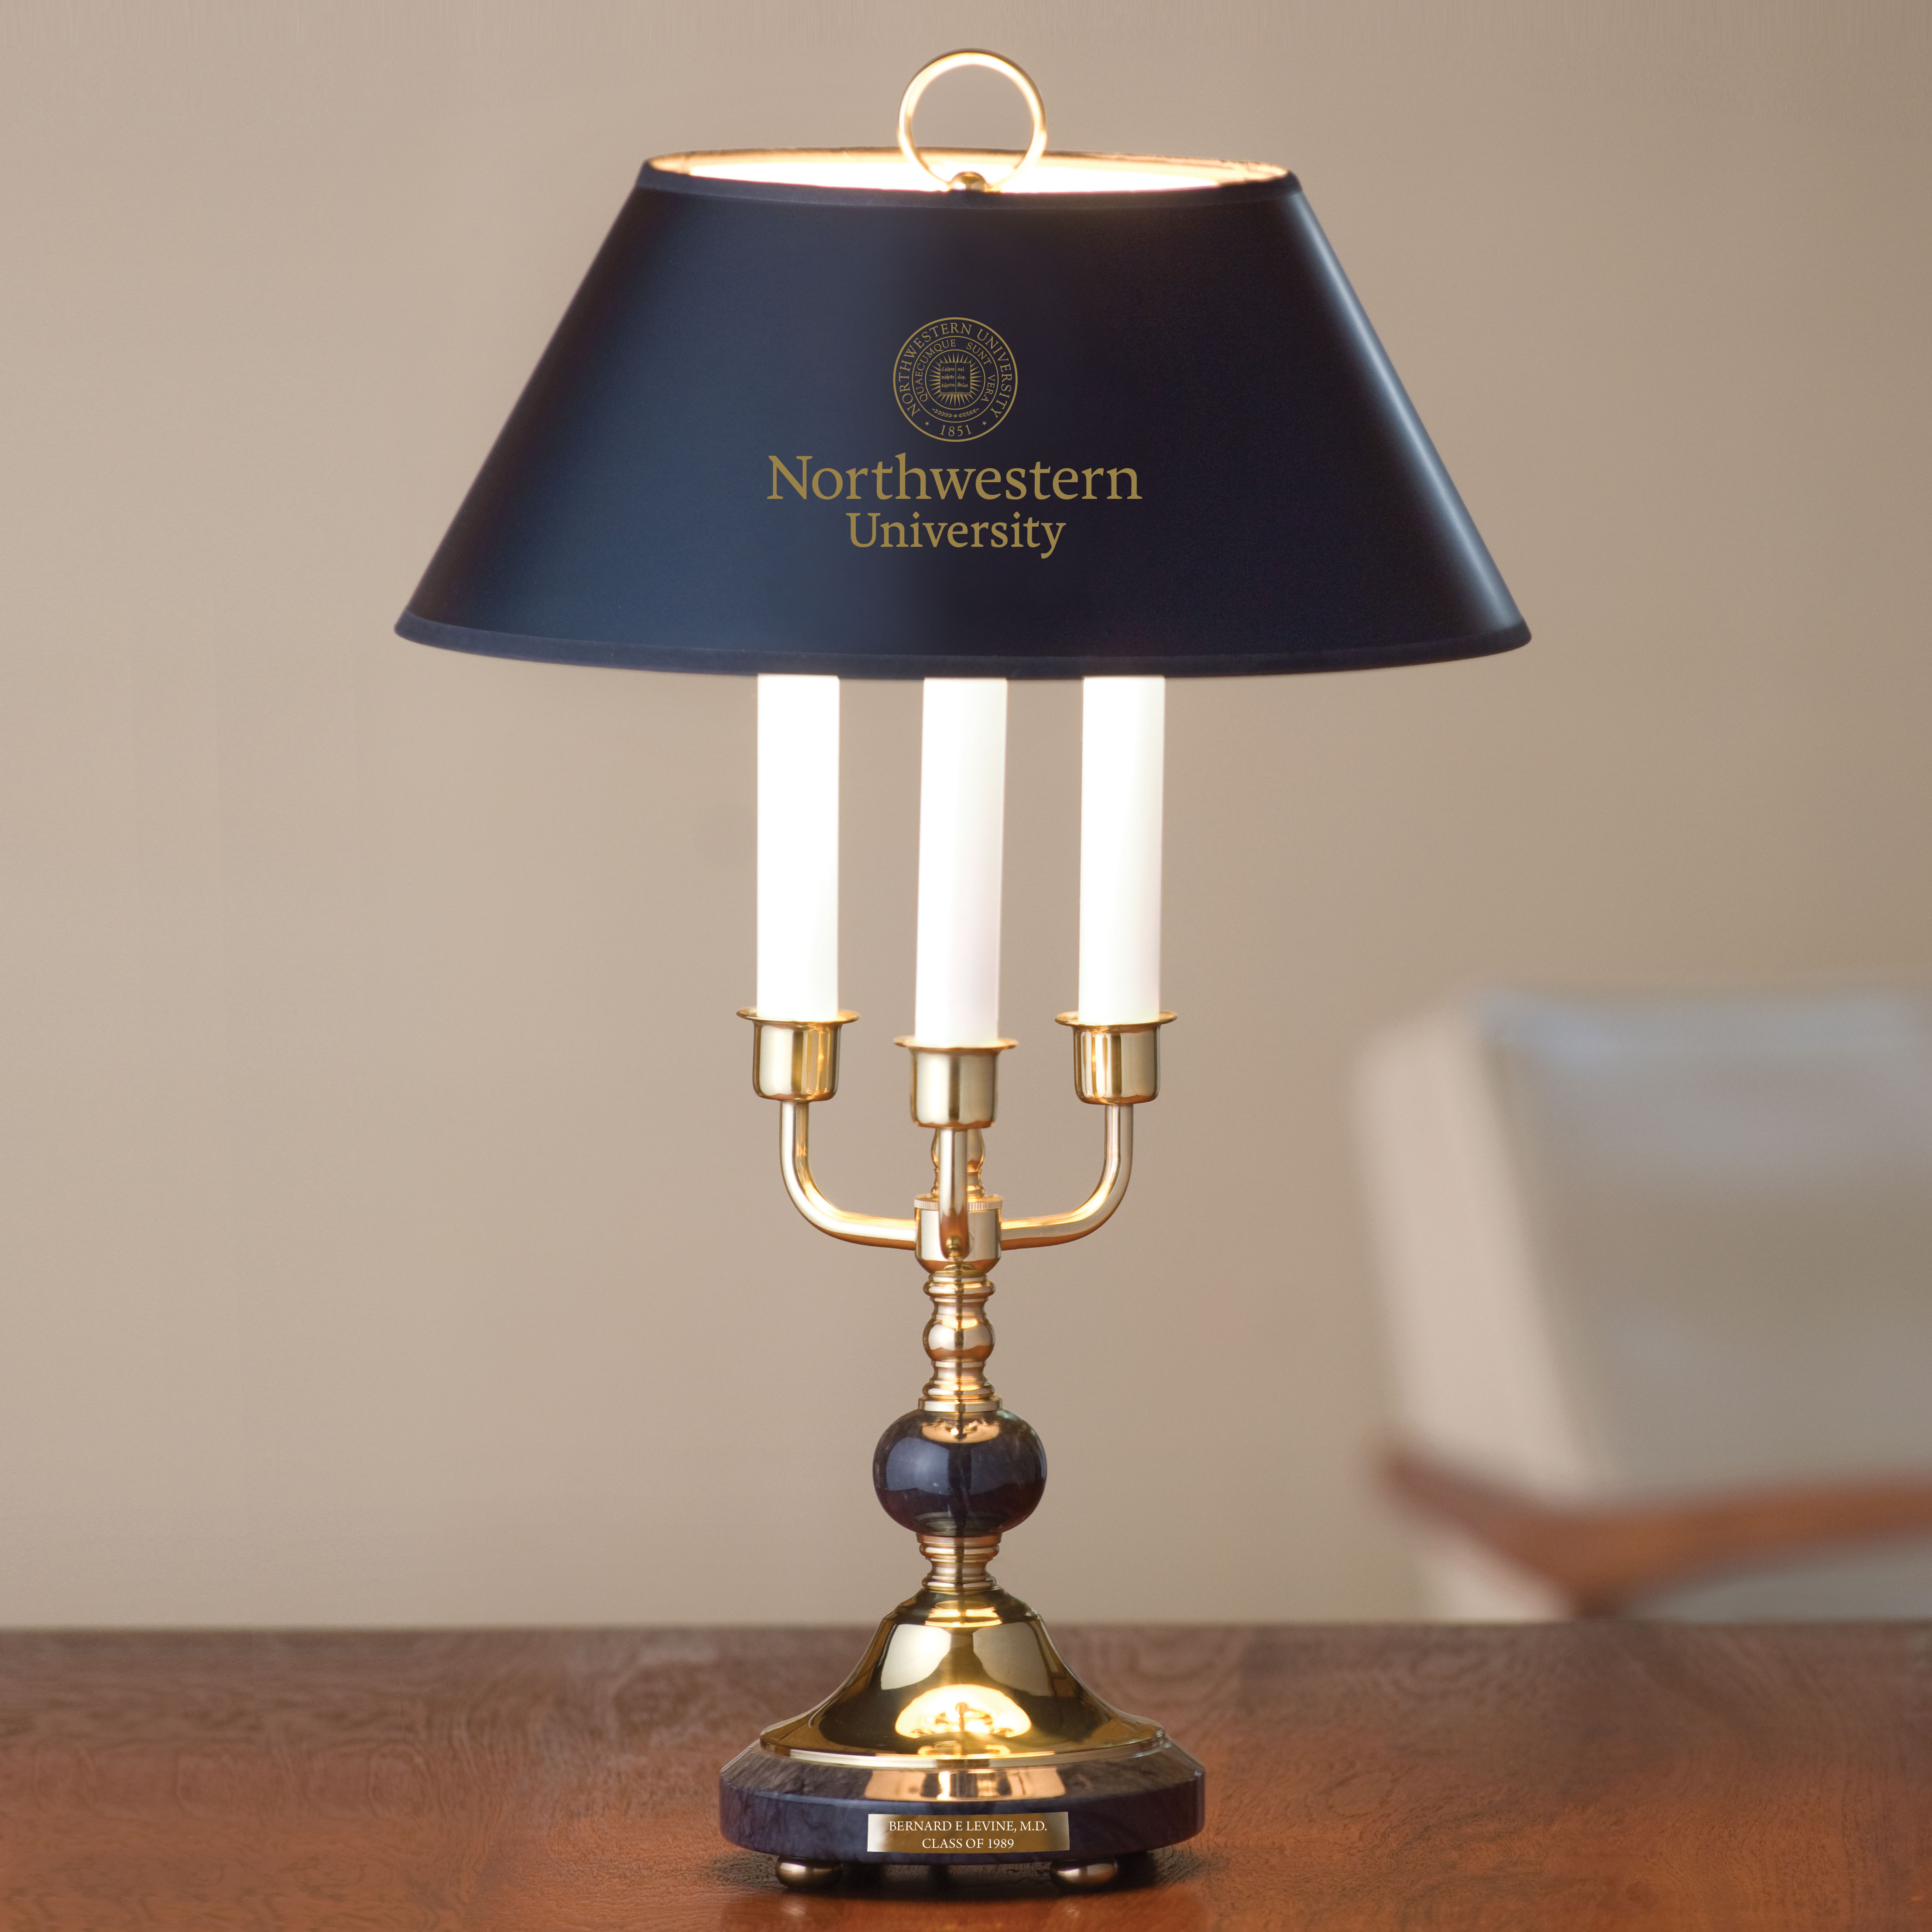 Northwestern University Lamp in Brass & Marble - Image 1